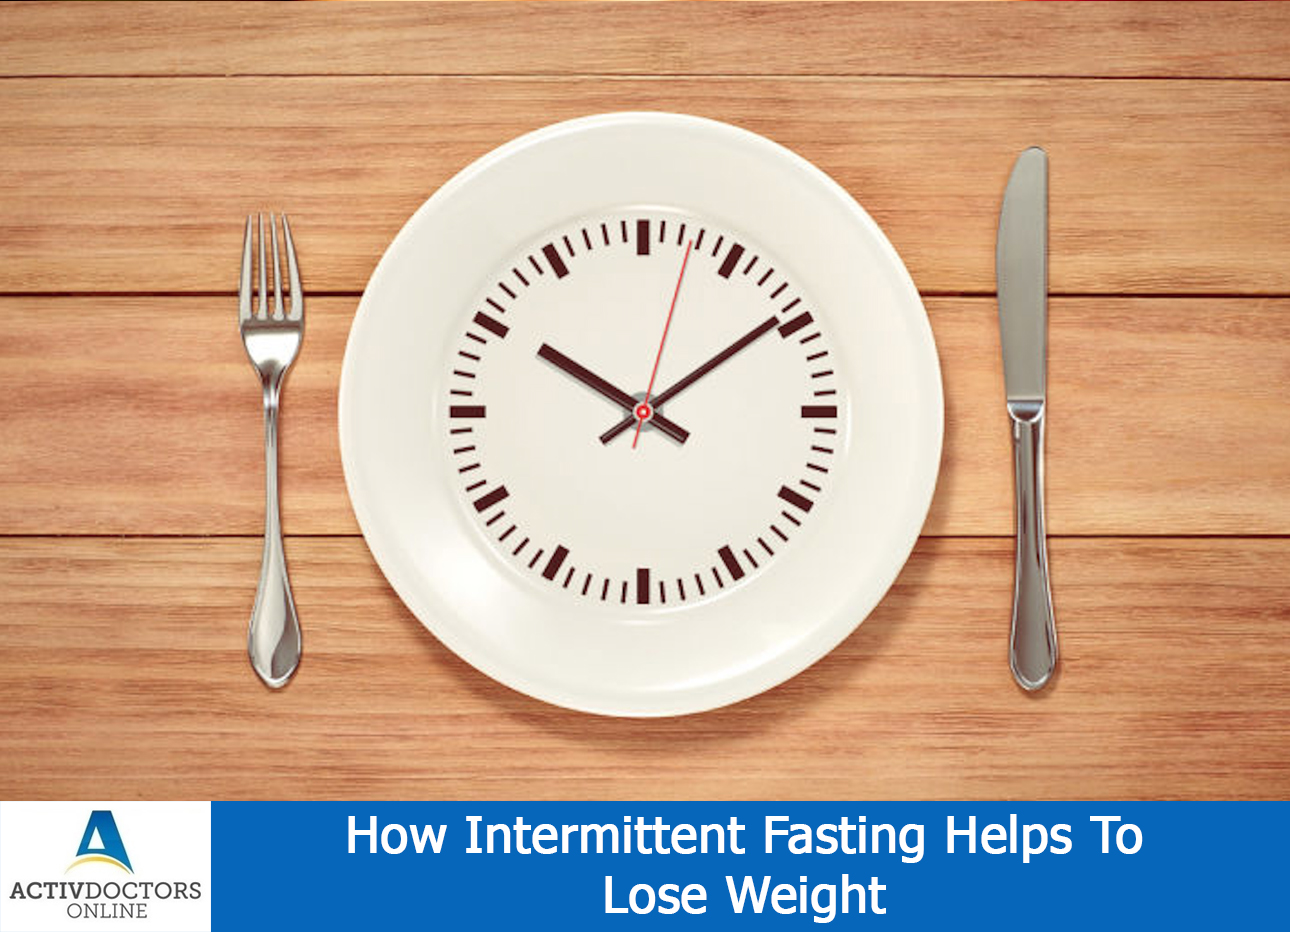 How Intermittent Fasting Helps To Lose Weight